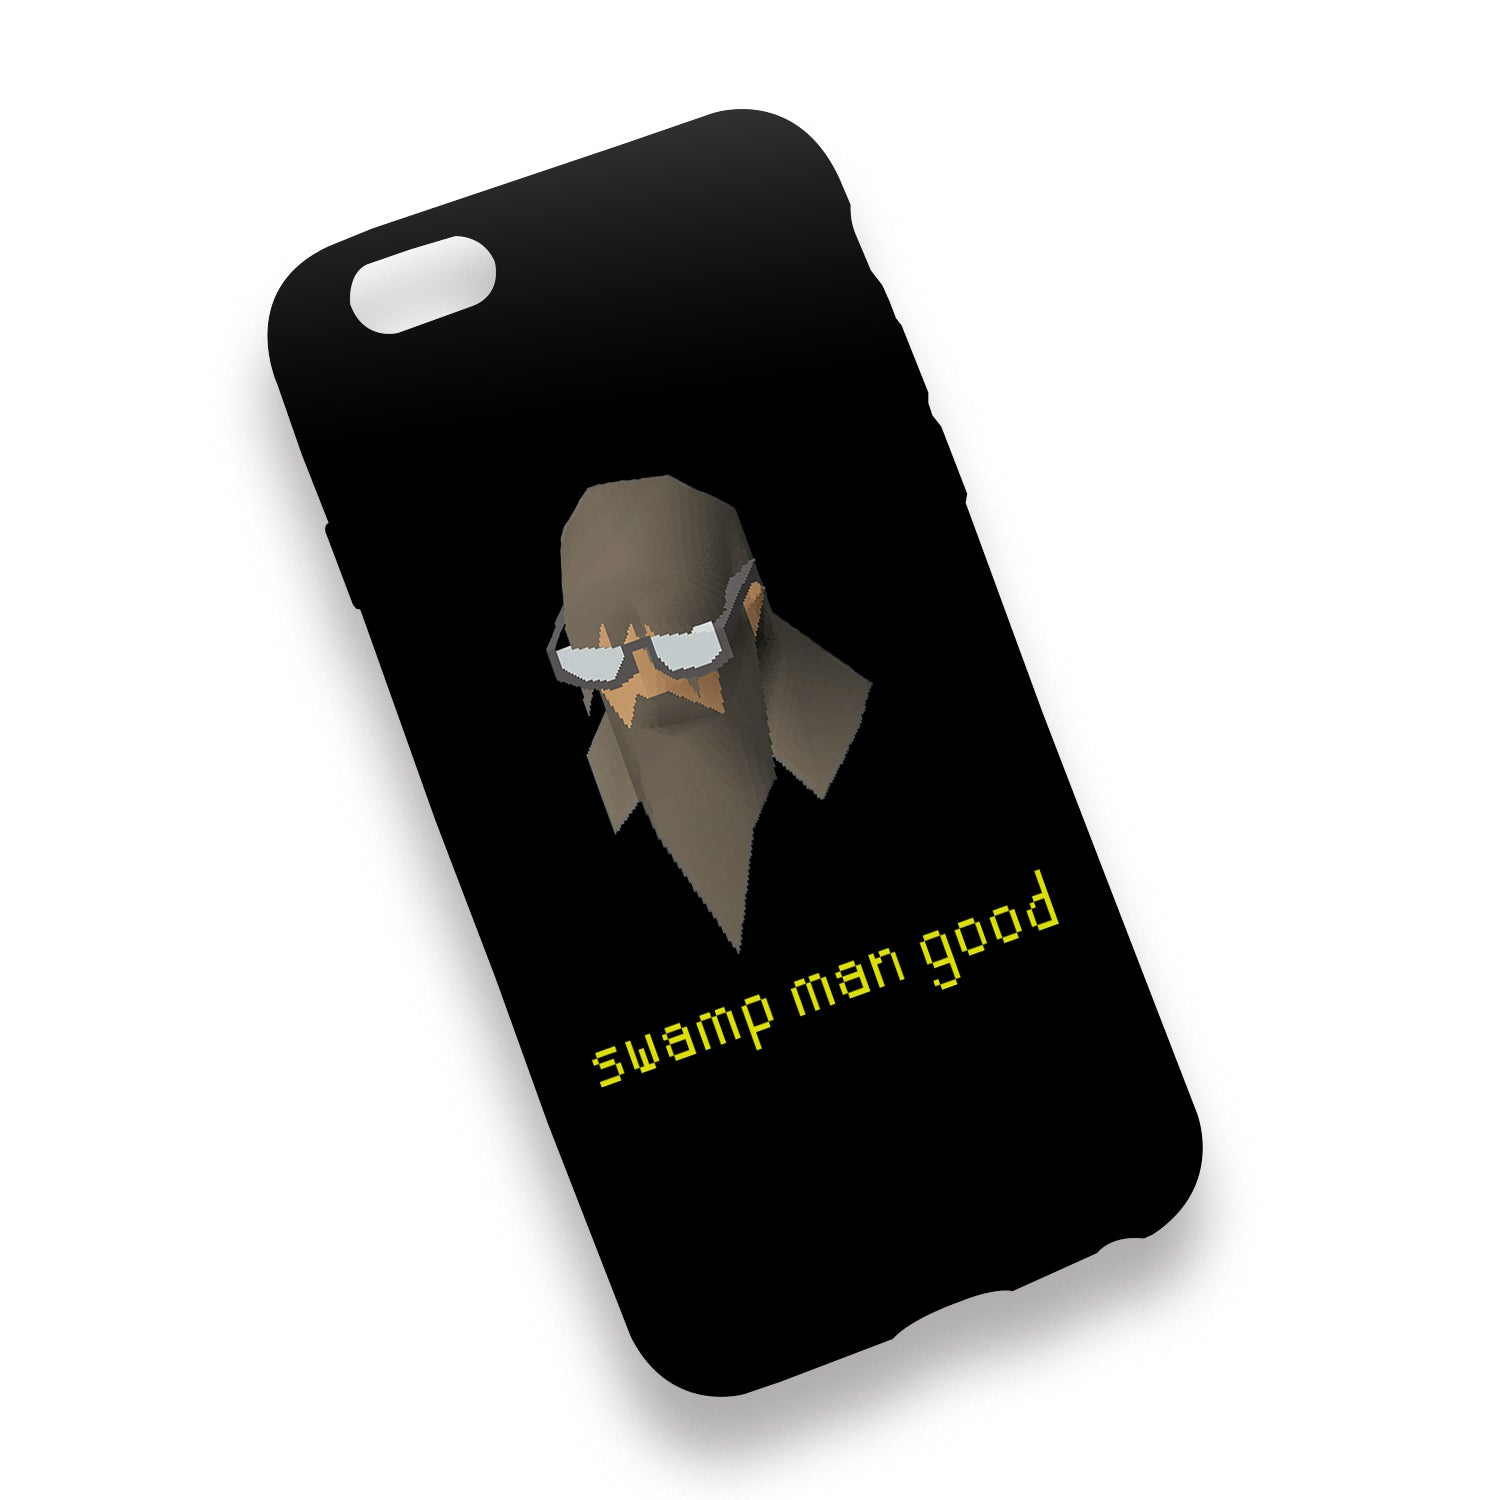 Swamp Man Good - Phone Case